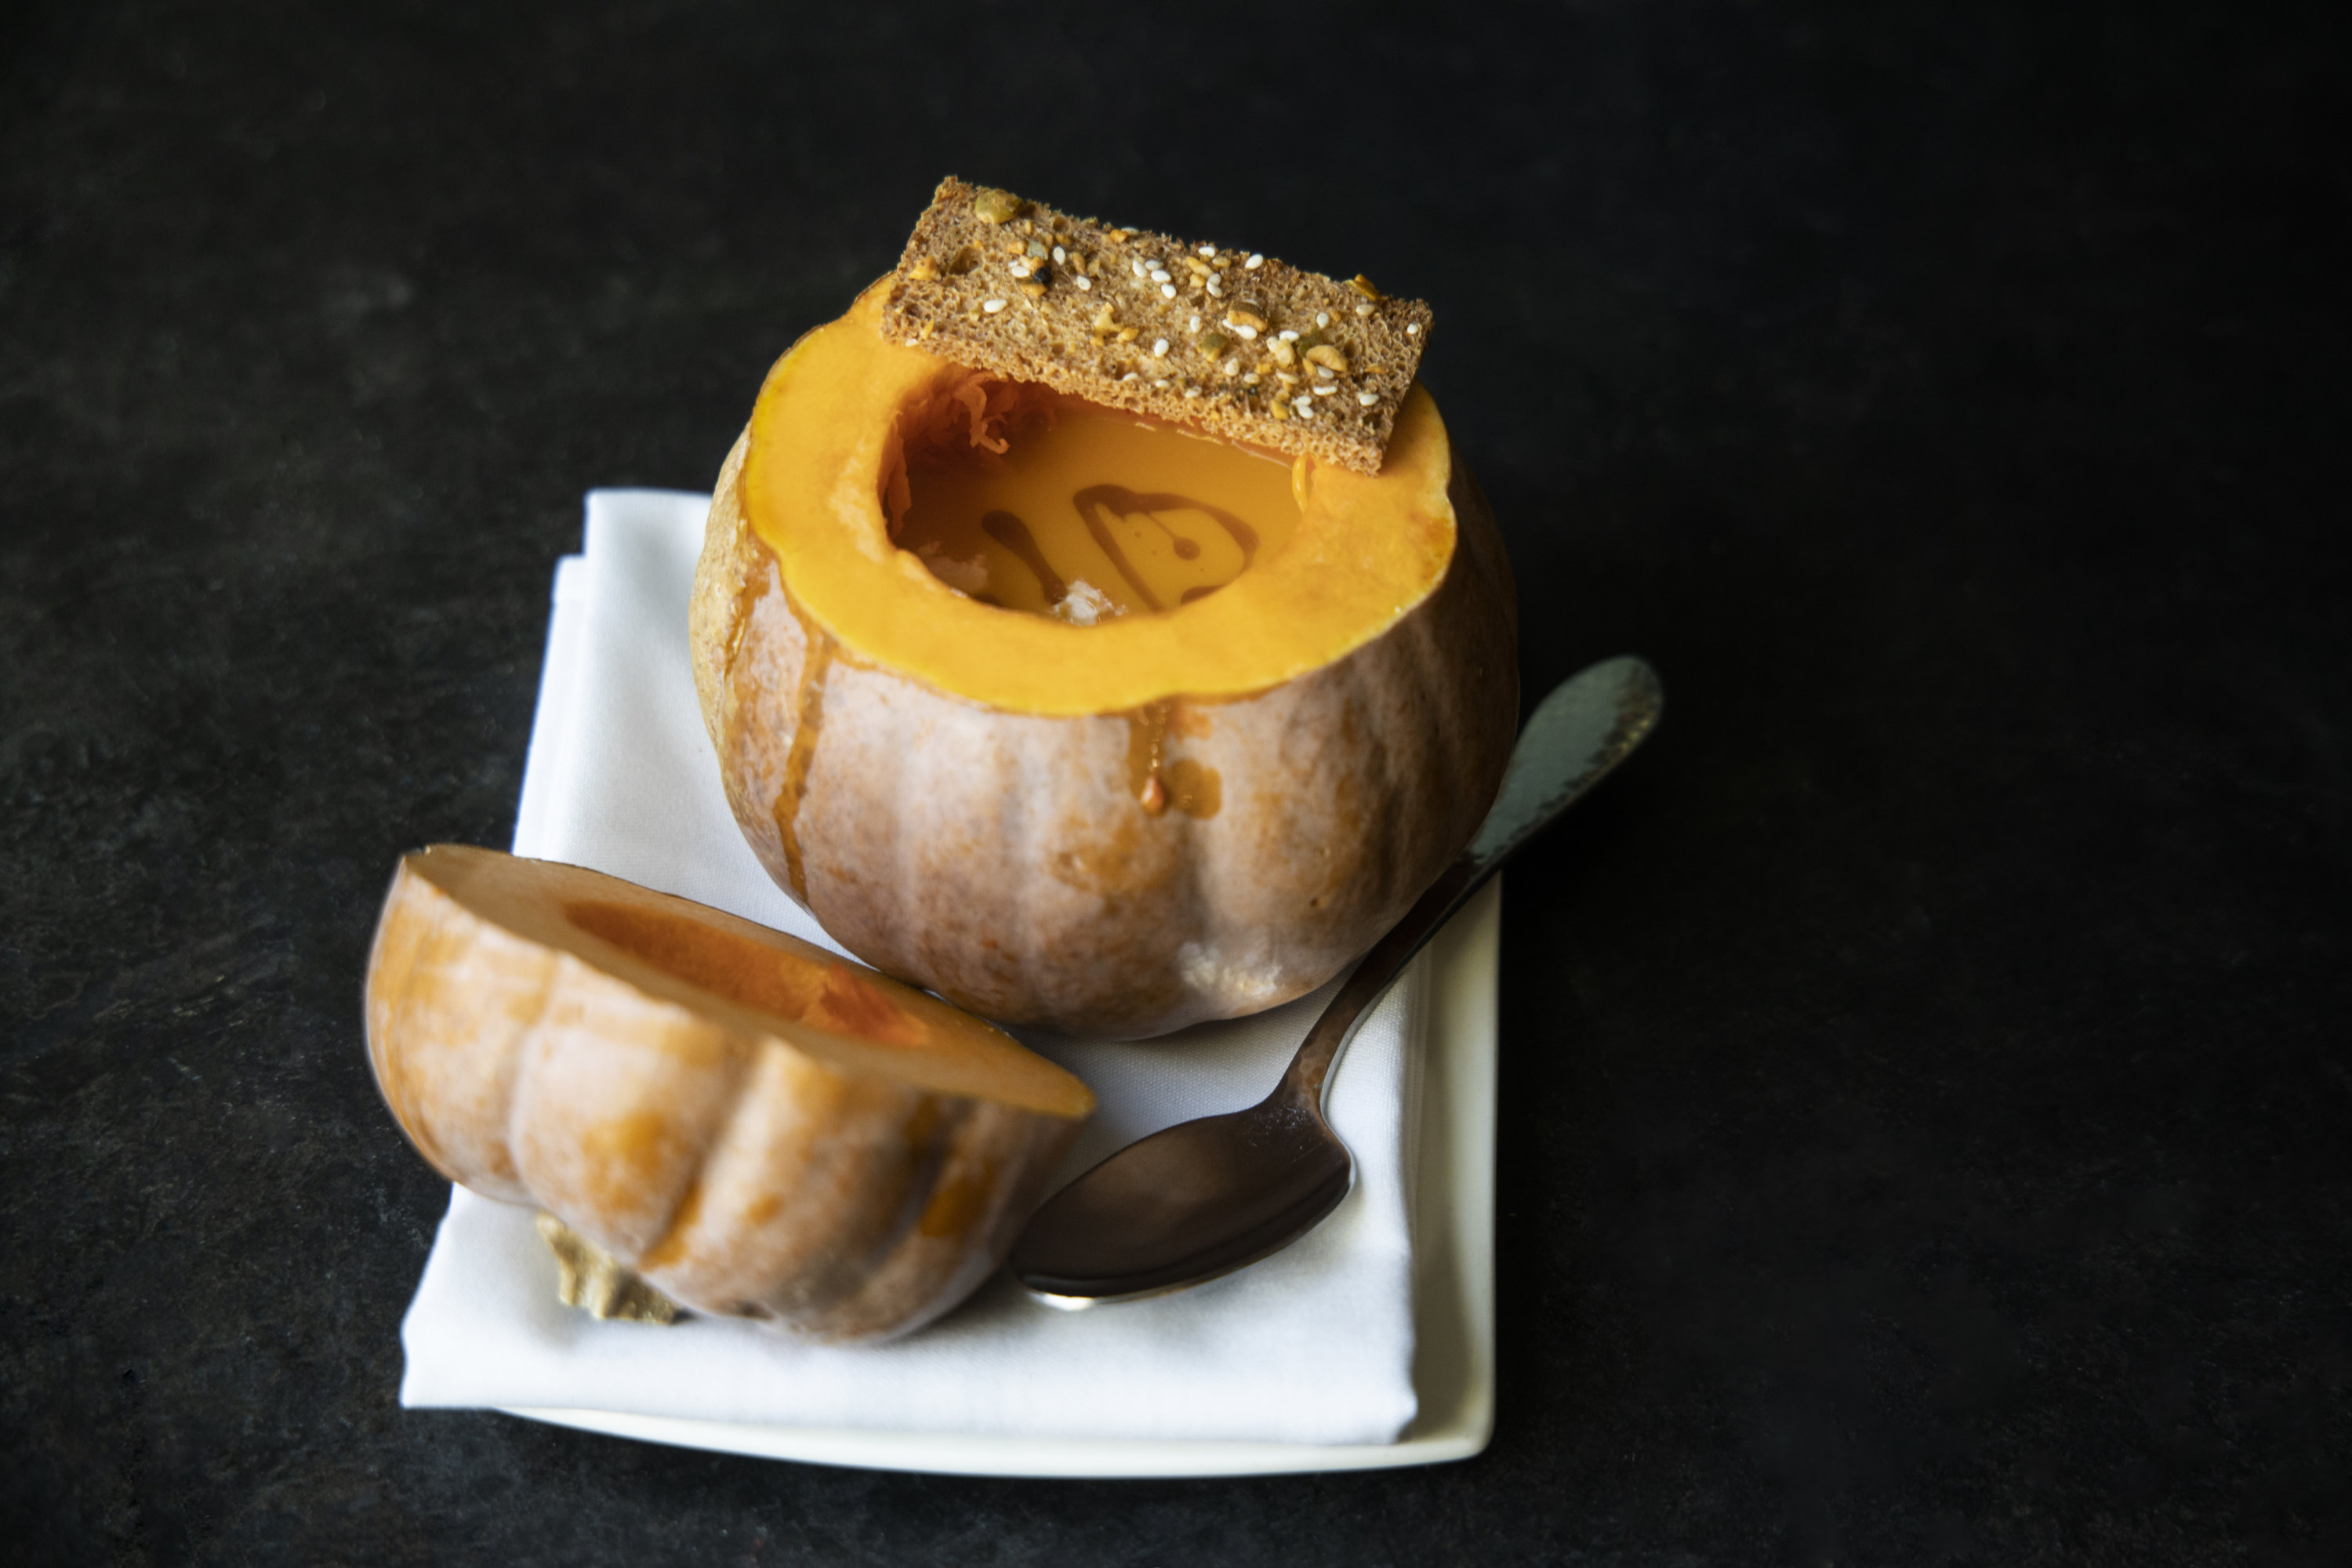 Koginut squash soup served in a koginut squash. Photo by Jennifer Chase.